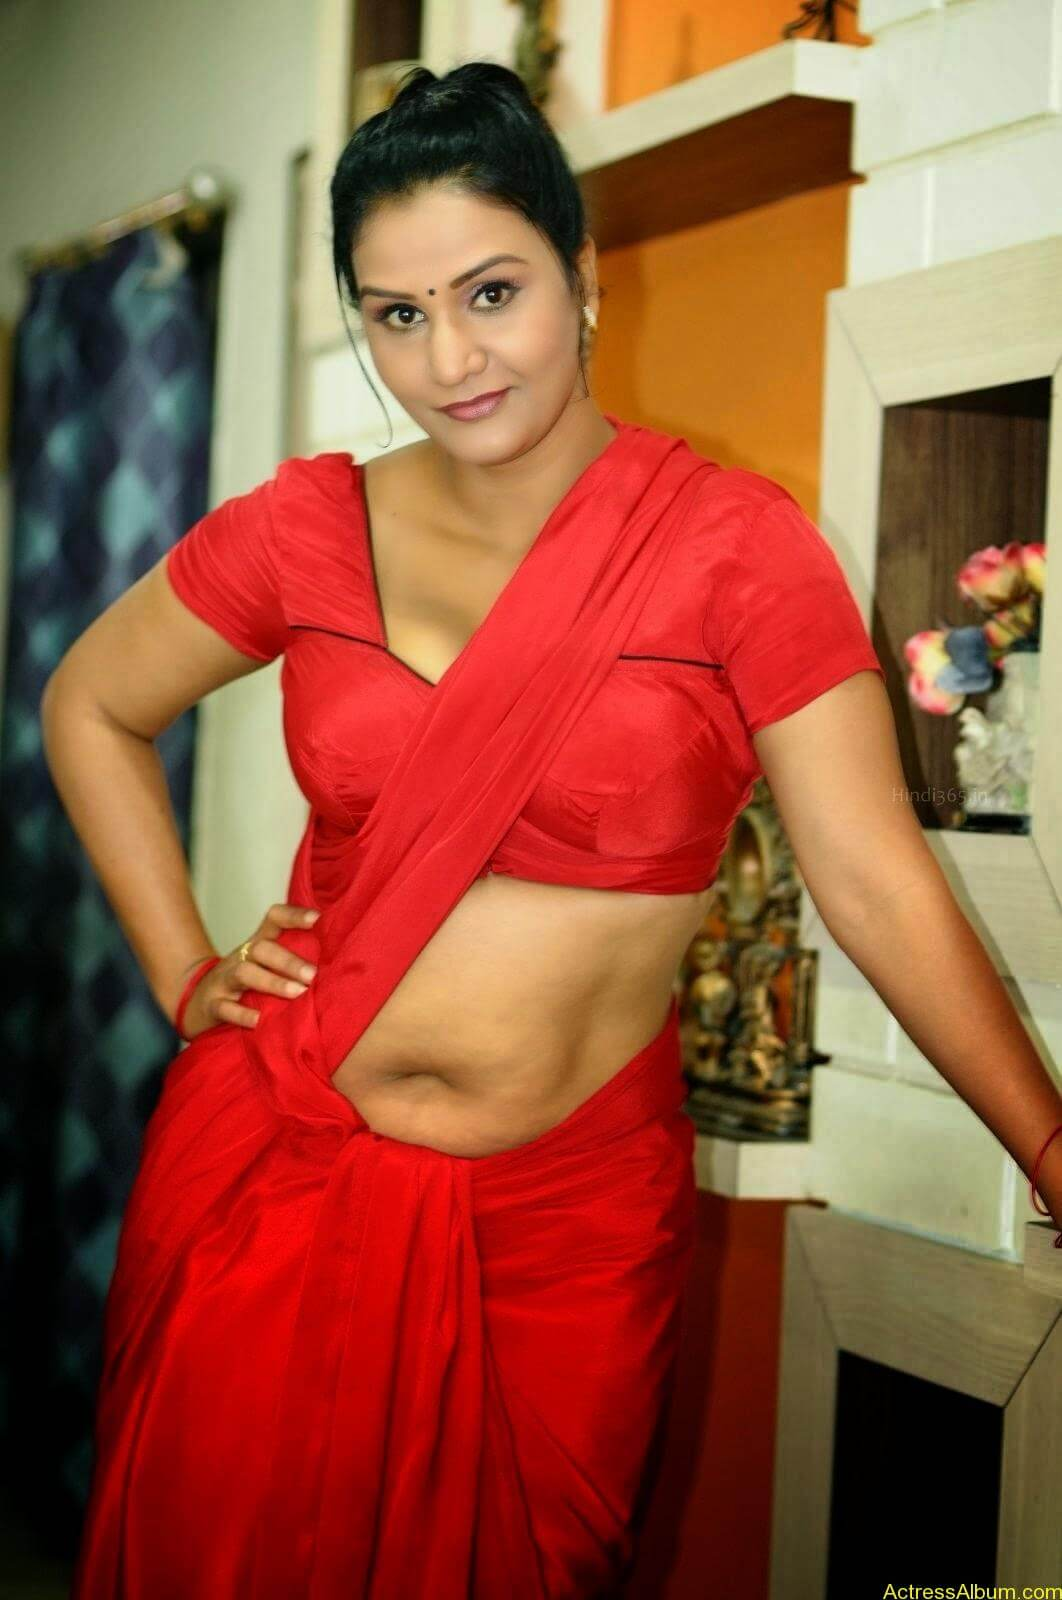 ACTRESS APOORVA VERY HOT IN RED SAREE PHOTO COLLECTION 2